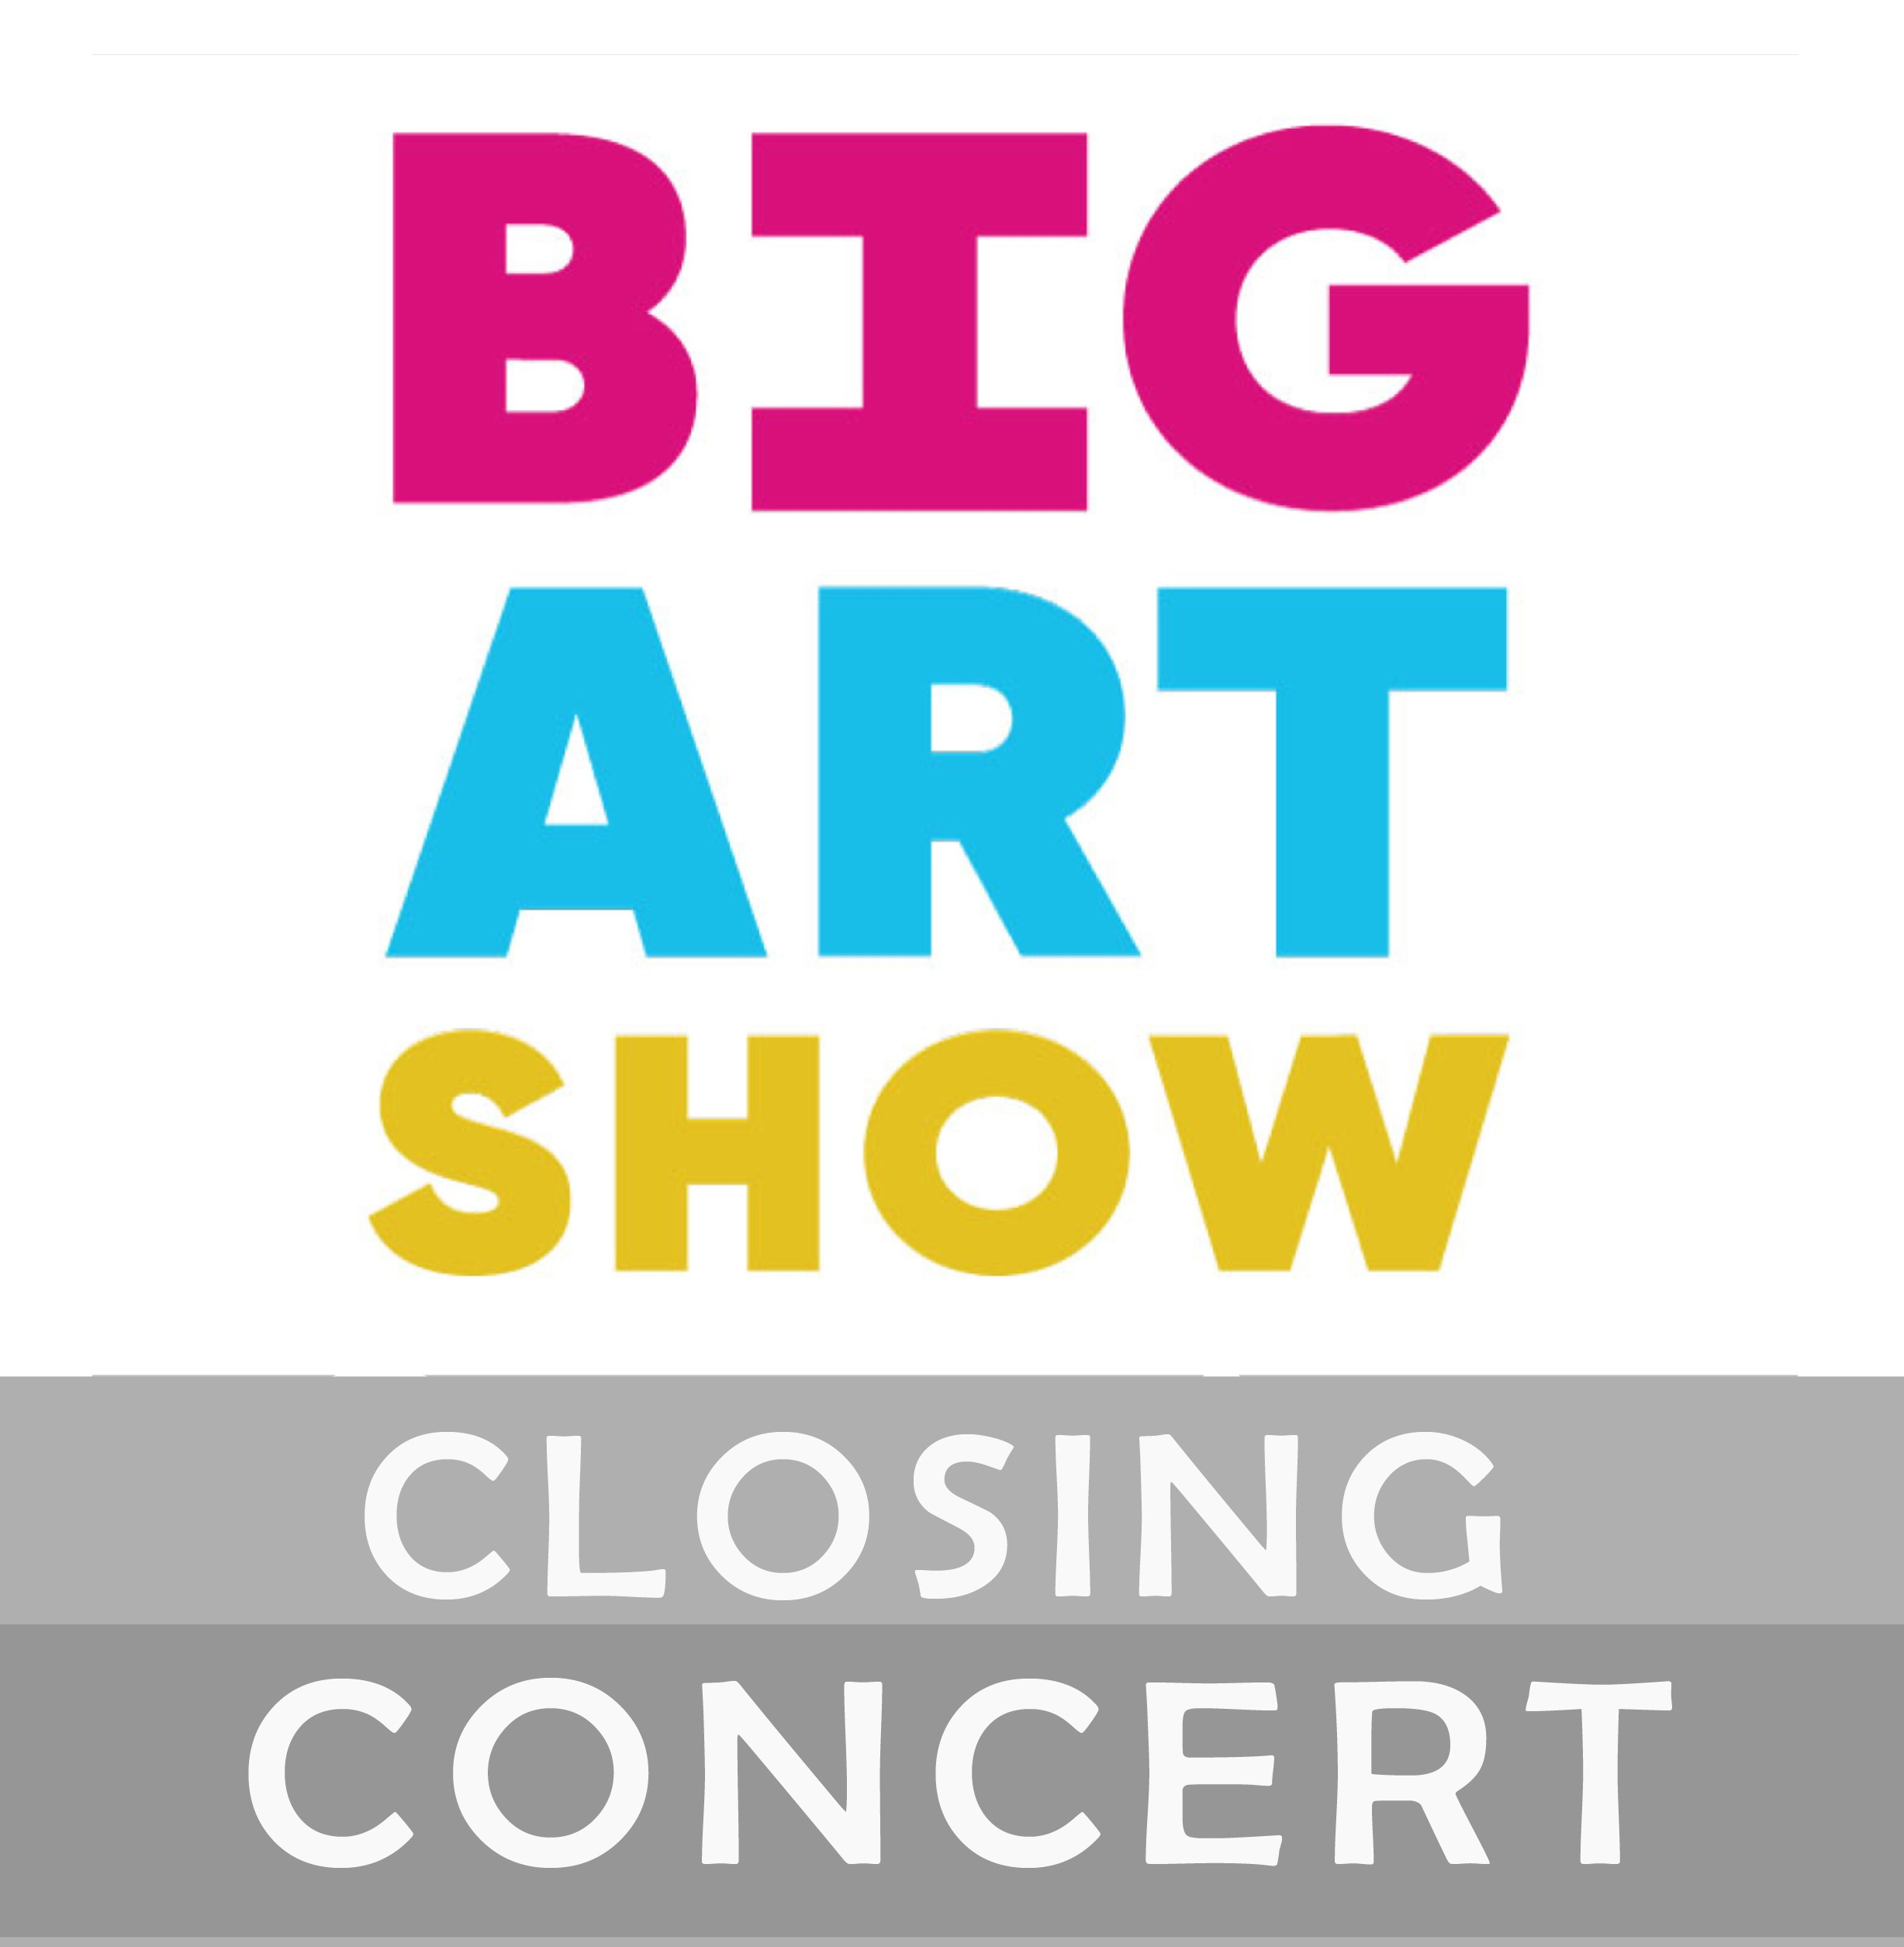 BIG ART SHOW_CLOSING CONCERT-LOGO-2019.jpg